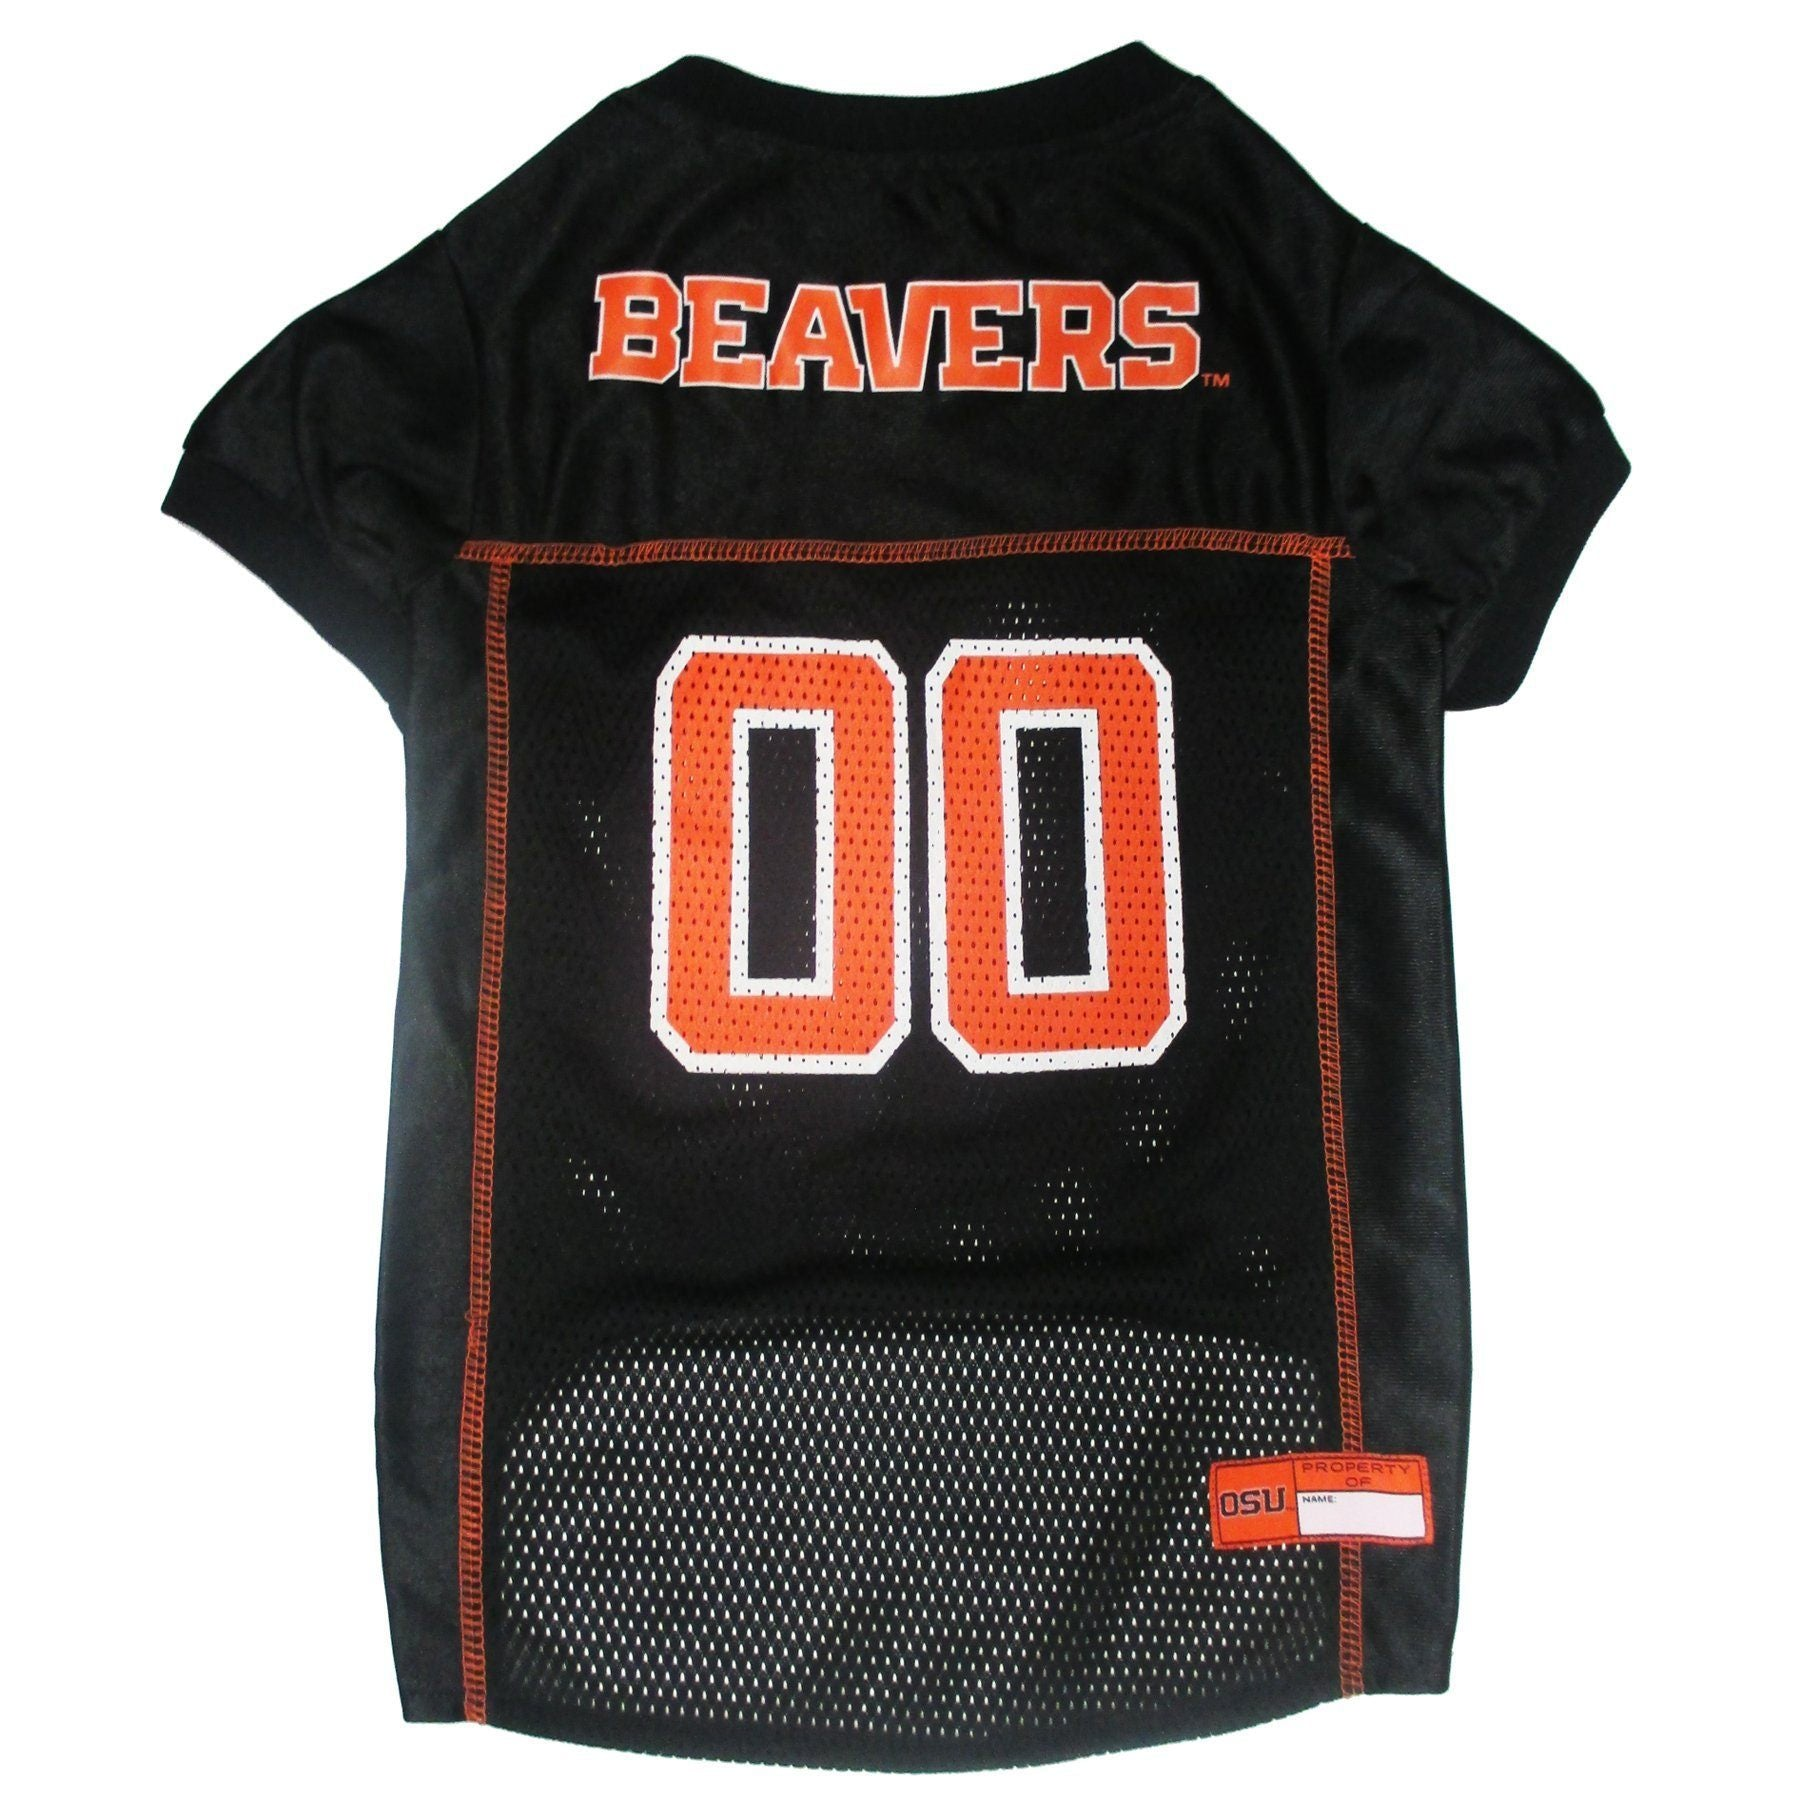 Oregon Beavers Football Puppy Dog Jersey - Jersey Champs - Custom Basketball, Baseball, Football & Hockey Jerseys